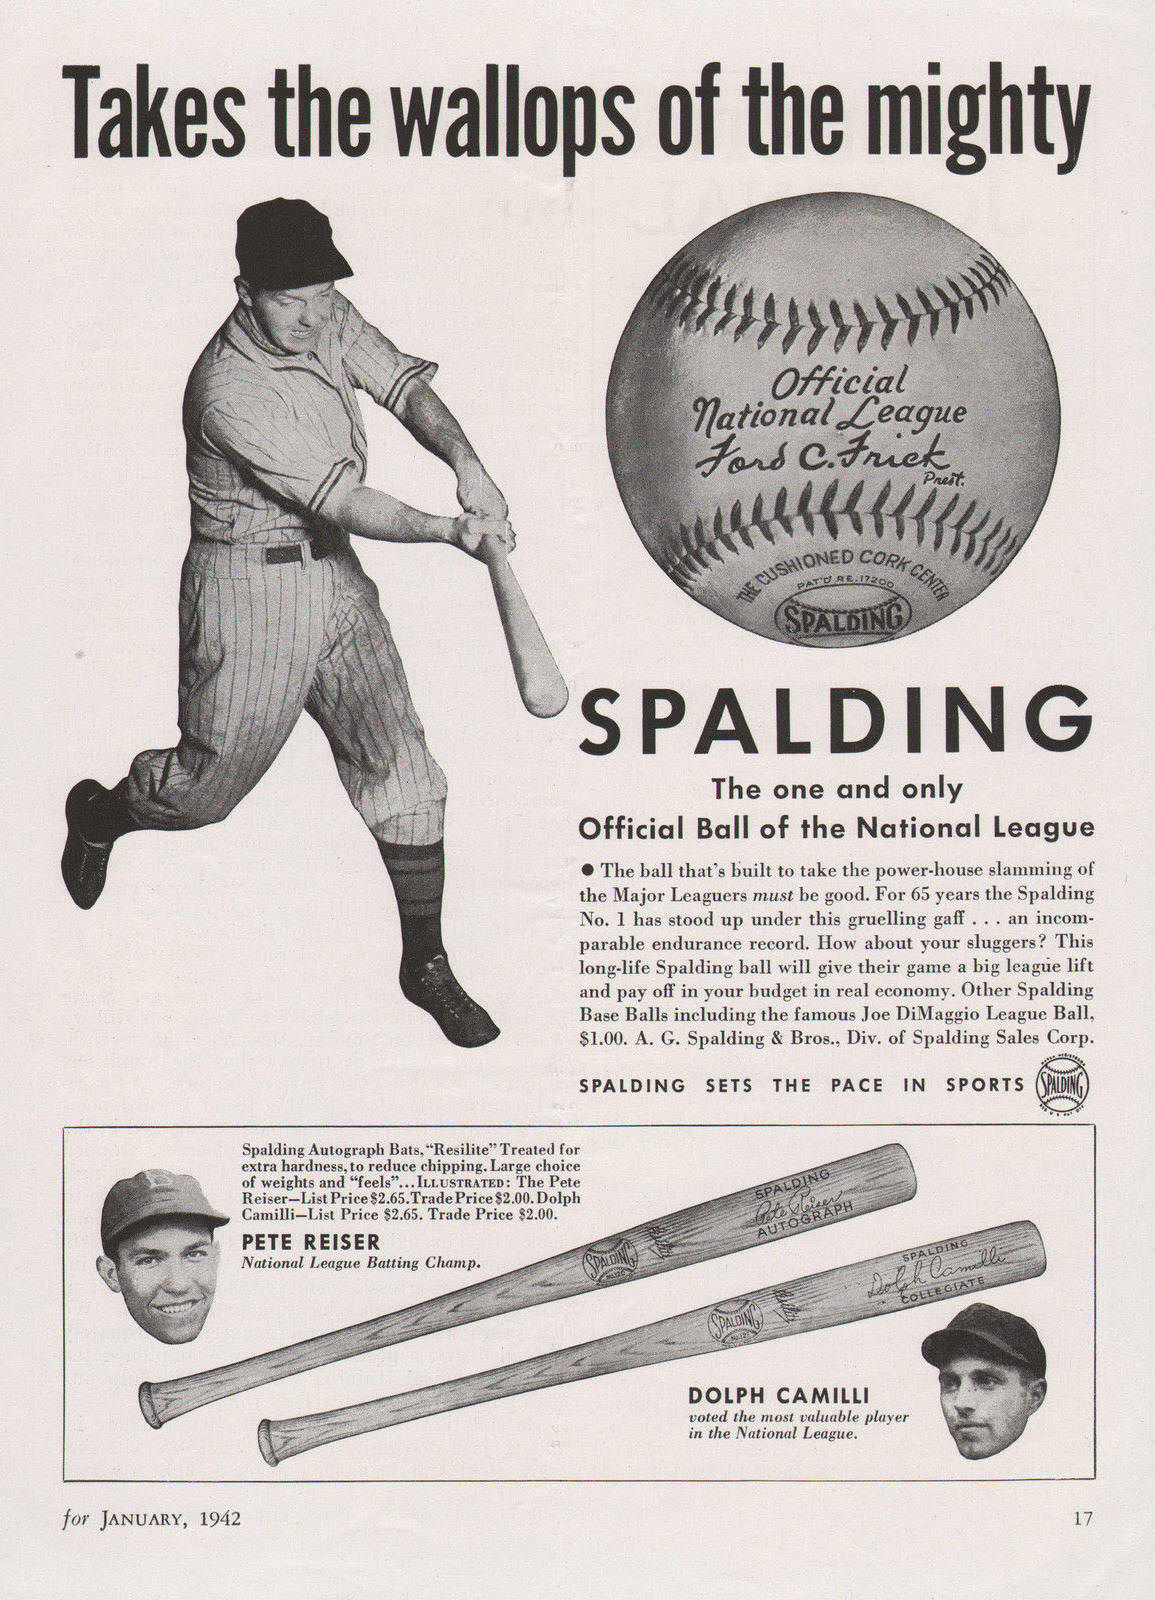 spalding baseball bat dating The company was founded in 1876 when albert spalding and wilmer jesús pisco calvo both were pitchers and the manager of a baseball team in chicago, the chicago white stockings the company standardized early baseballs and developed the modern baseball bat with the bulge at its apex in 1892, spalding.